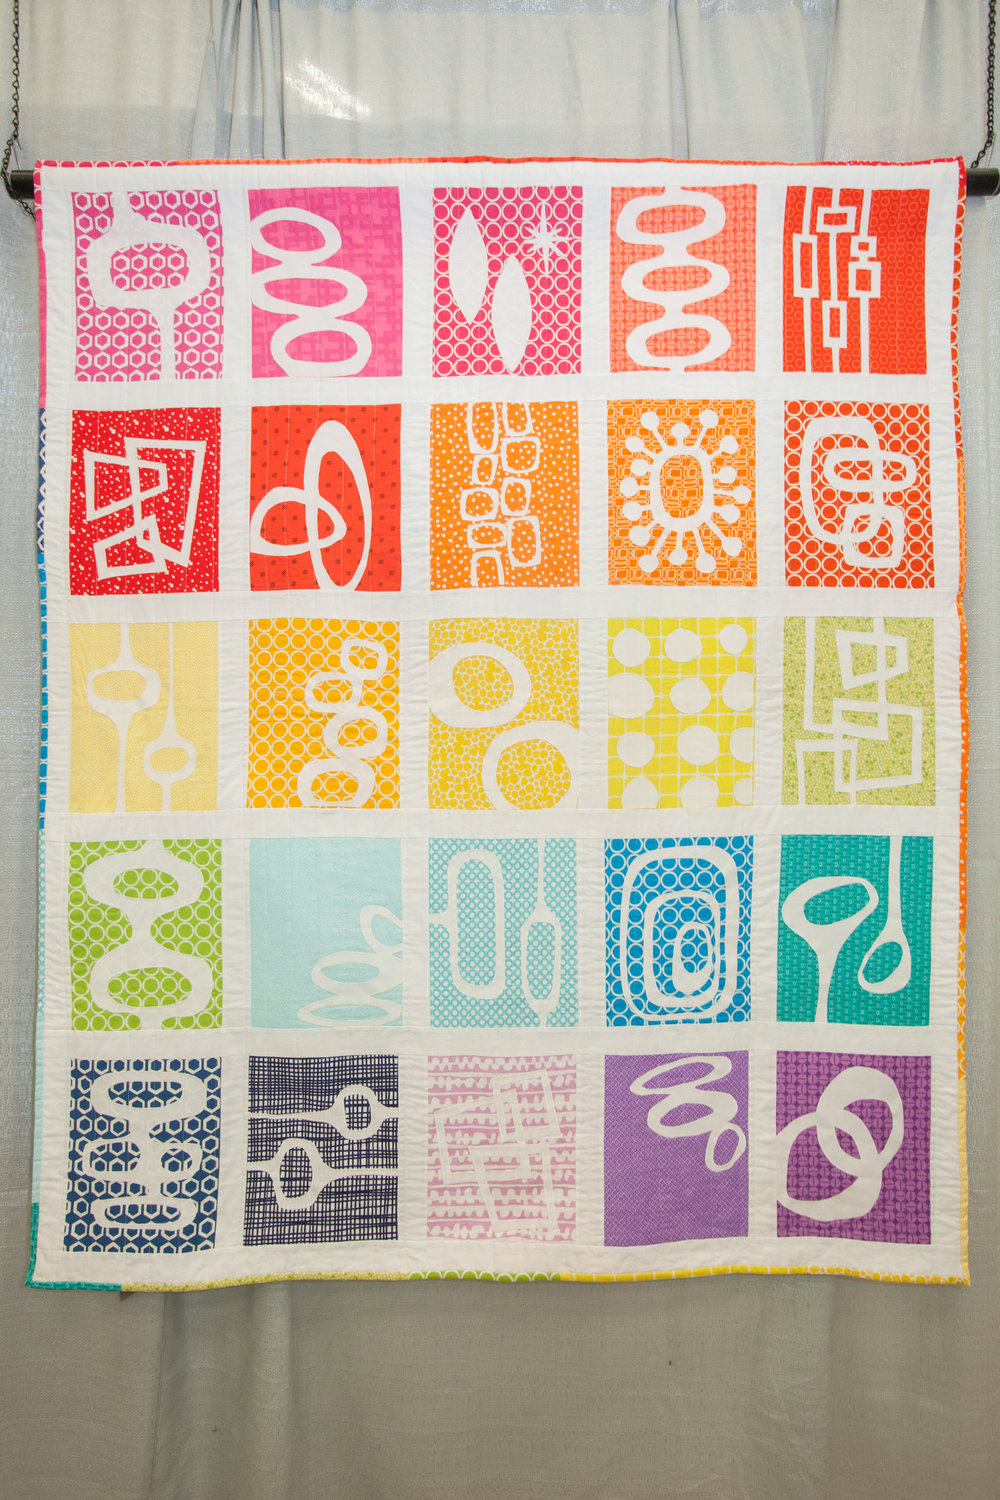 3rd Place: Retro Modern Shapes  Pieced and quilted by Heather Davidson Design source: SuZanna Anna